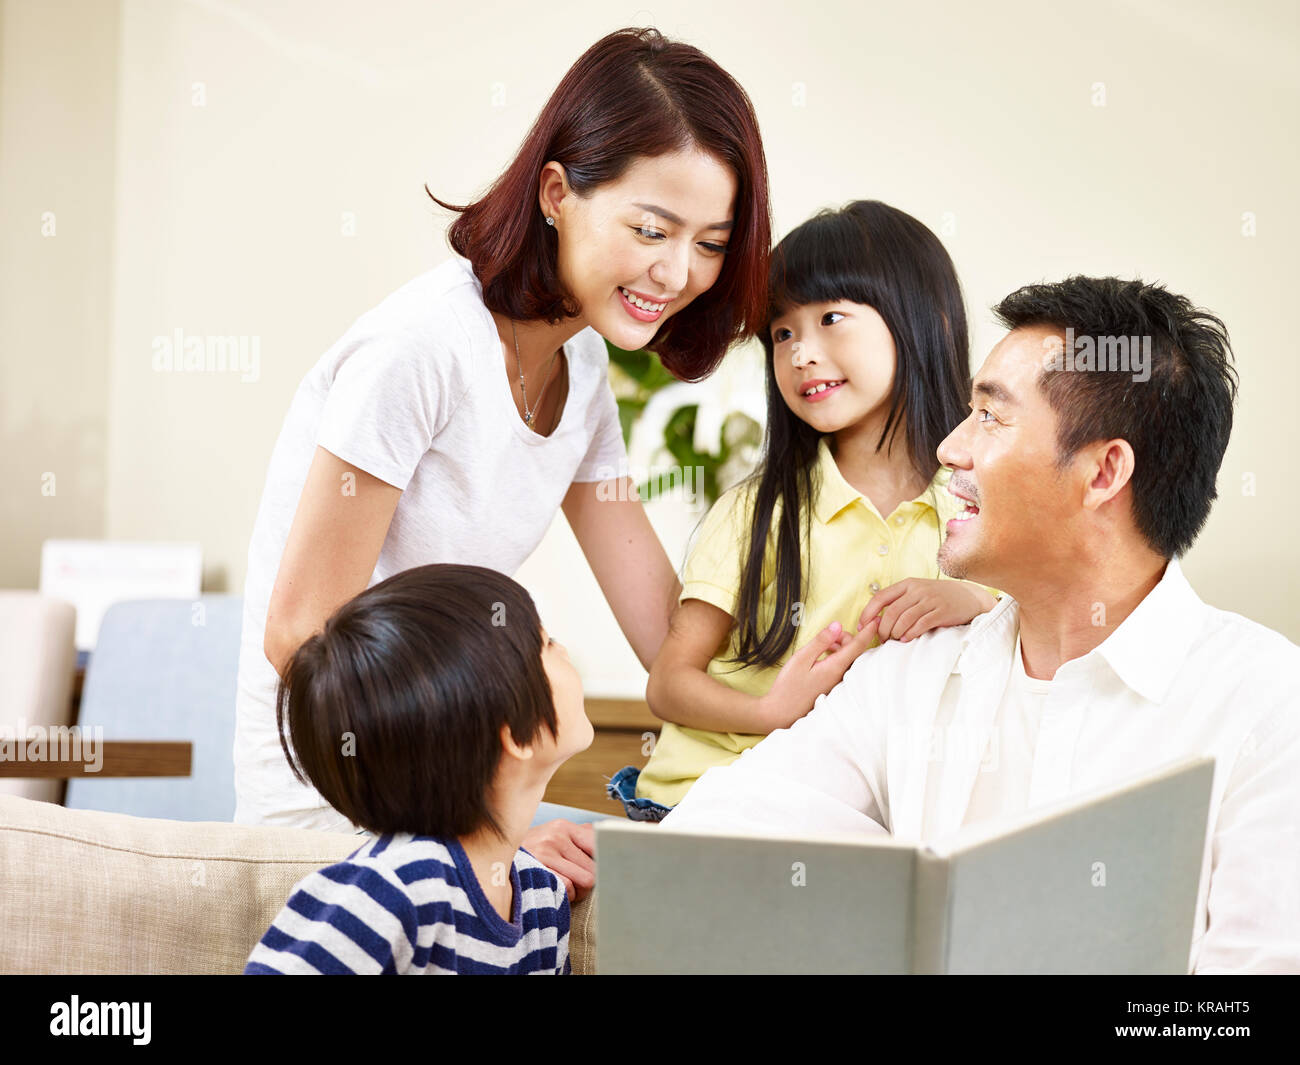 asian parents mother and father and two children son and daughter reading a book telling a story together. - Stock Image